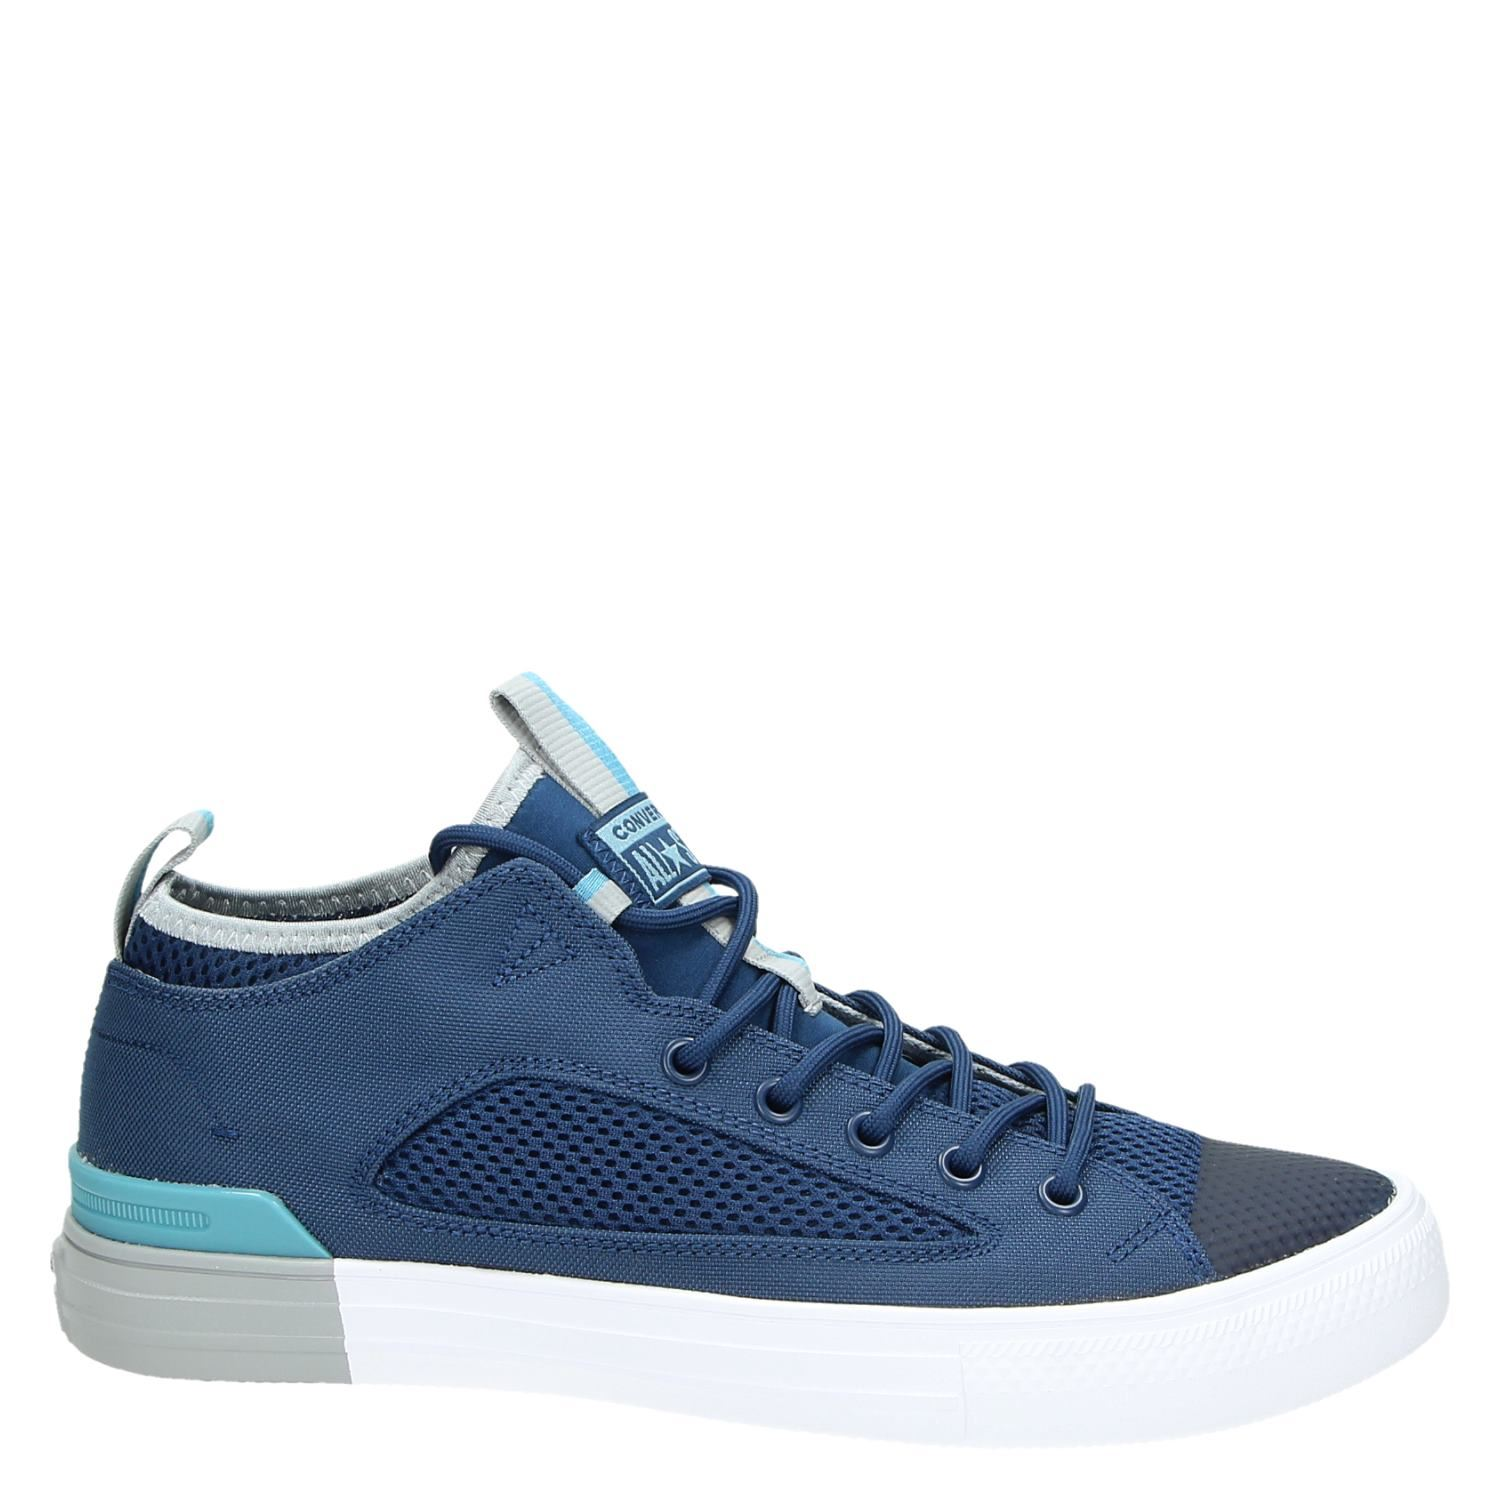 c7e6c514281 Converse Chuck Taylor All Star Ultra Ox heren lage sneakers blauw